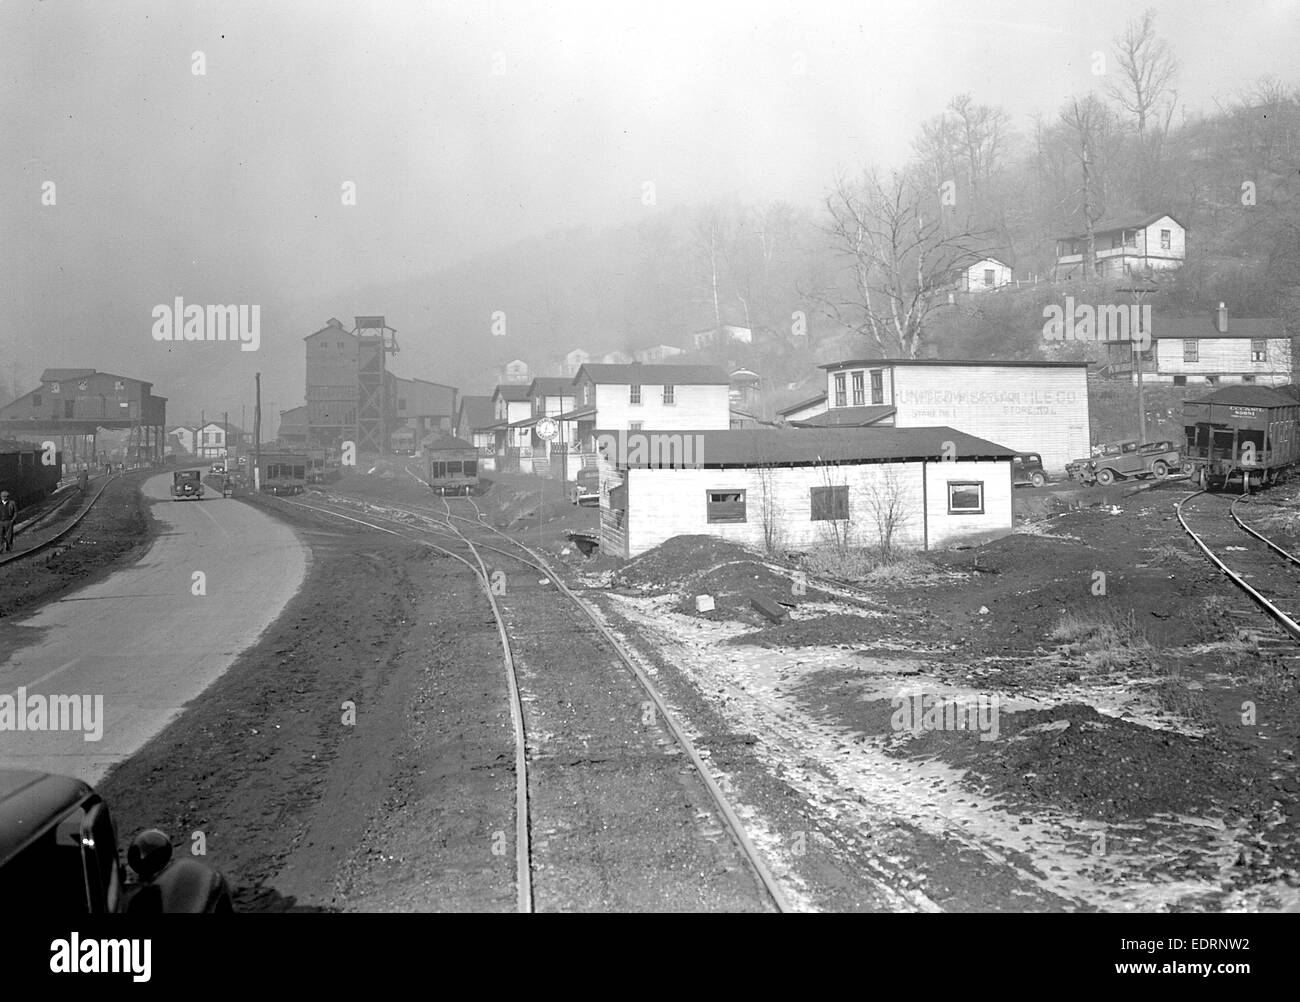 Scott's Run, West Virginia. Pursglove Mines Nos. 3 and 4 - This is the largest company of Scott's Run - Stock Image